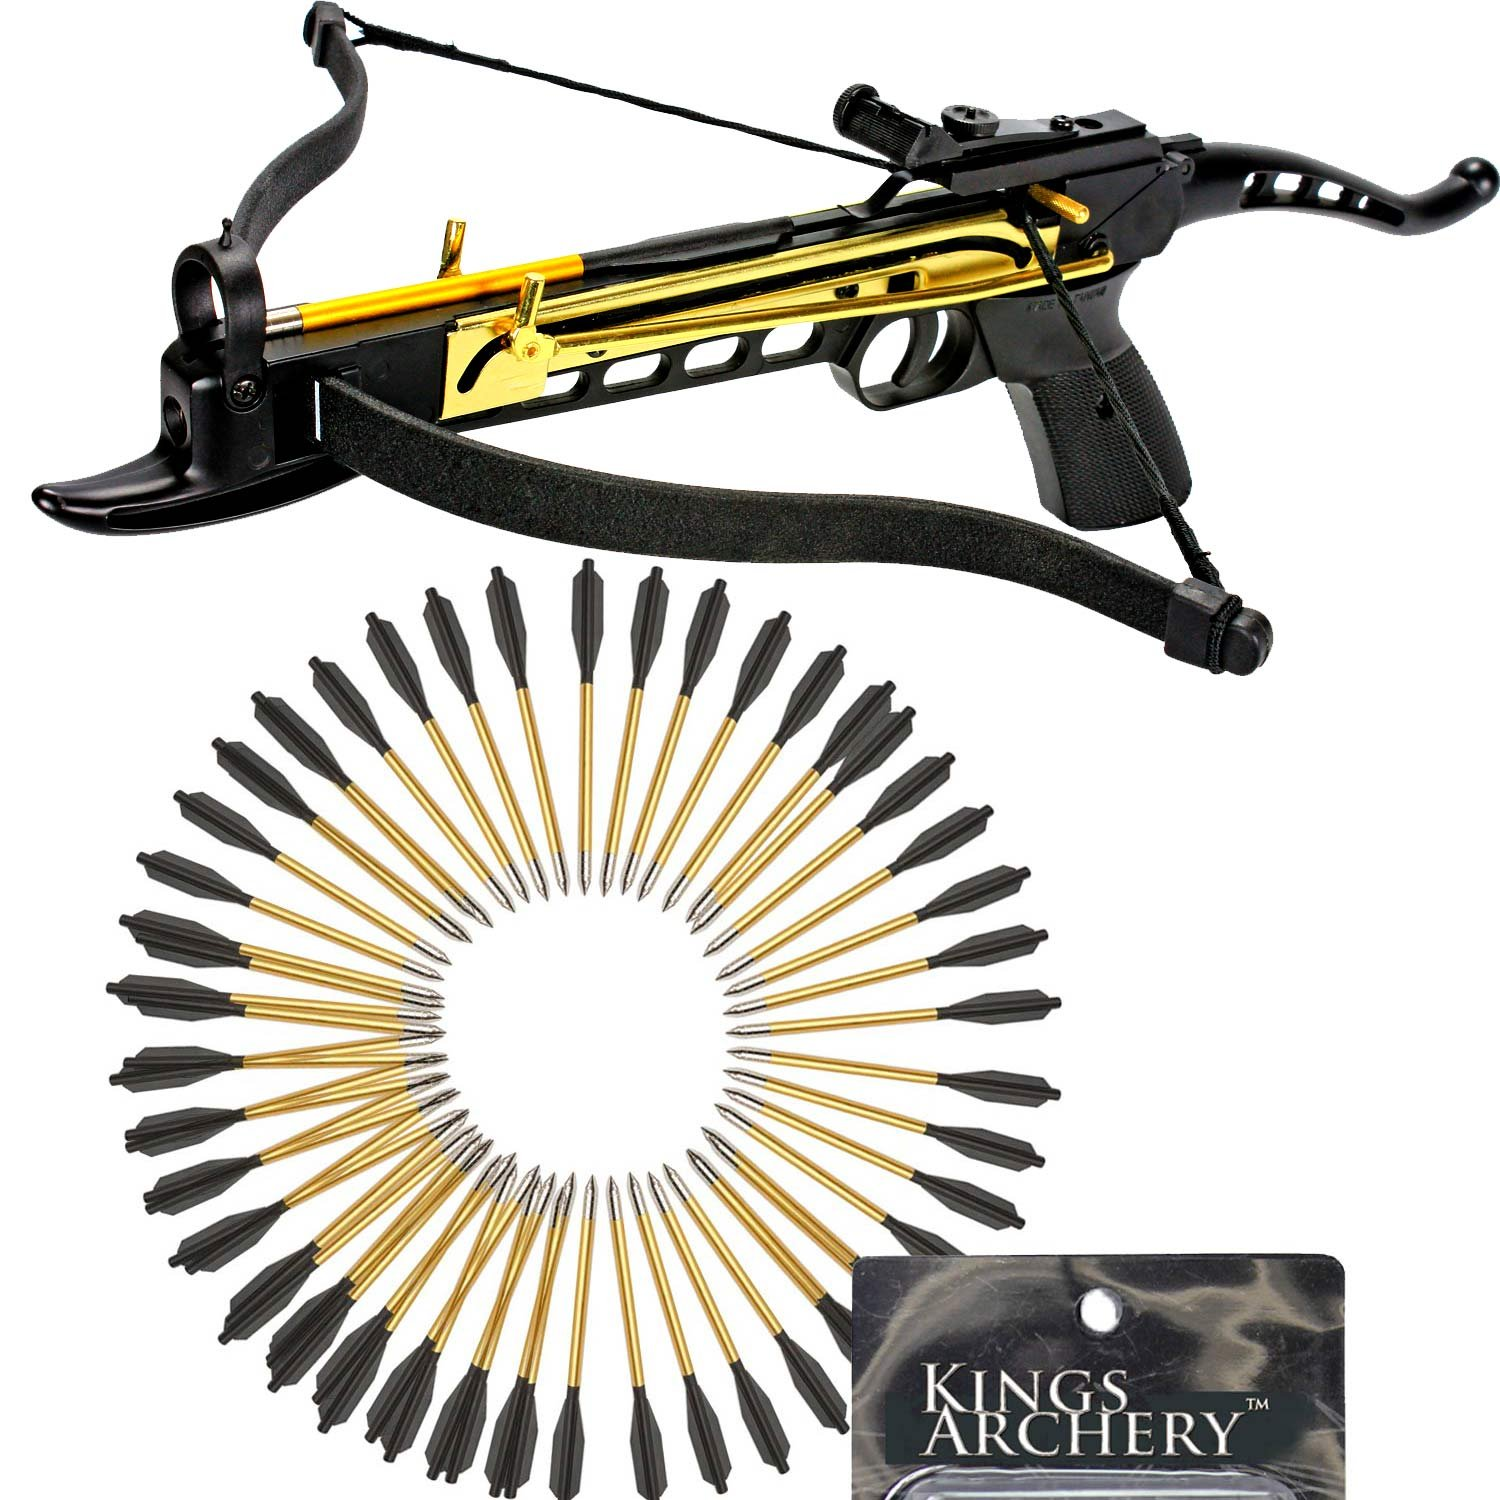 Crossbow Self-Cocking 80 LBS by KingsArchery® with Adjustable Sights and a Total of 63 Aluminim Arrow Bolt Set + KingsArchery® Warranty